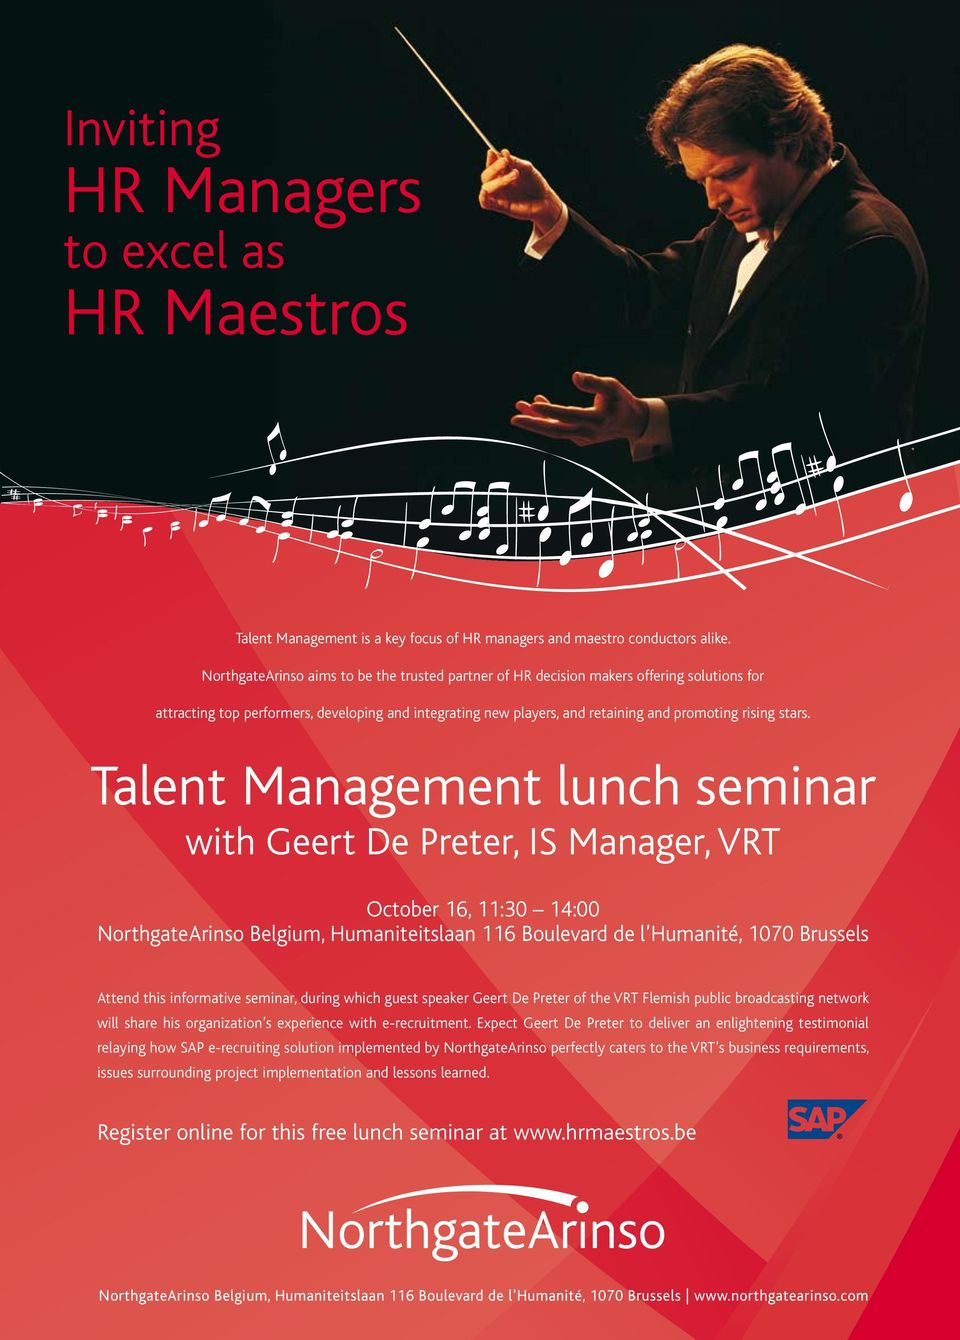 Talent Management lunch seminar with Geert De Preter, IS Manager, VRT October 16, 11:30 14:00 NorthgateArinso Belgium, Humaniteitslaan 116 Boulevard de l Humanité, 1070 Brussels Attend this